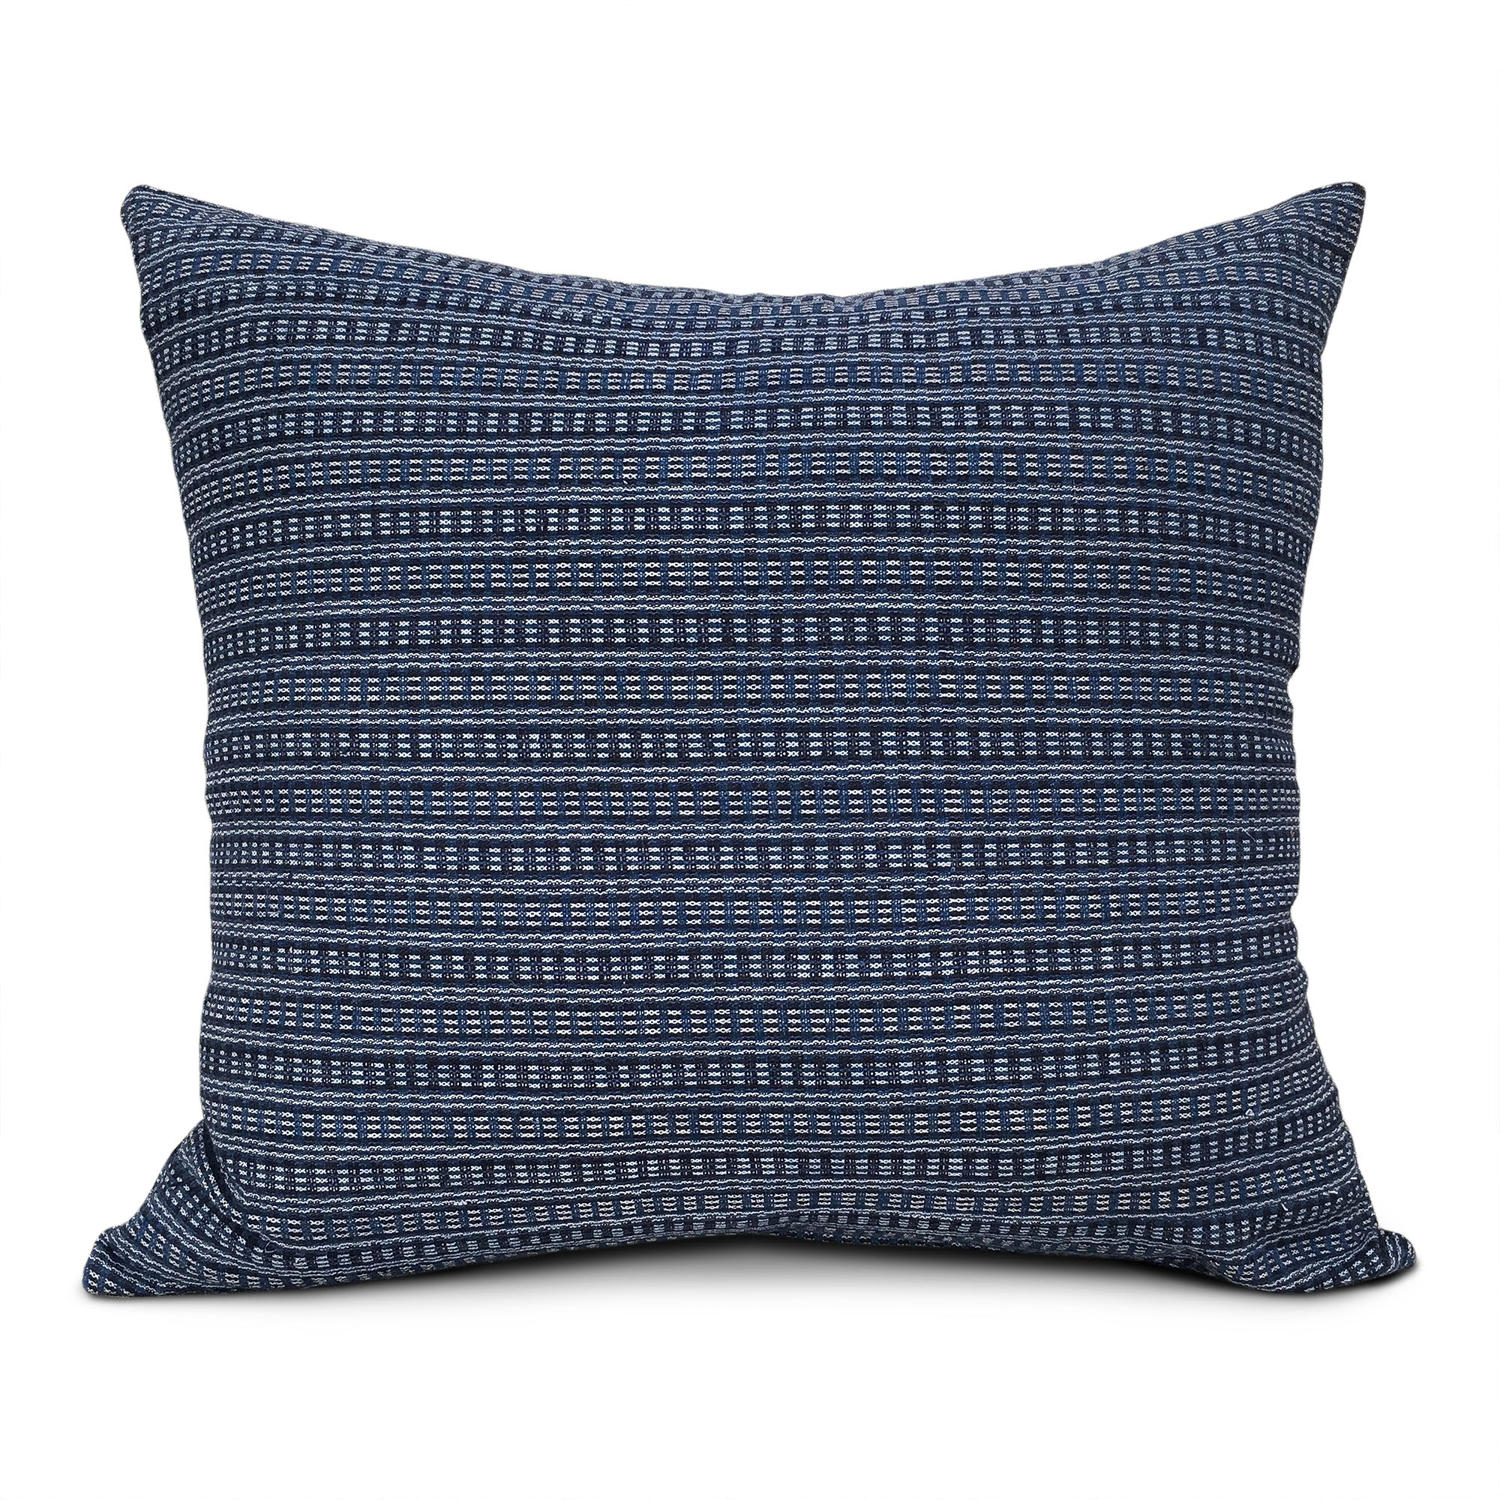 Shui Homespun Cushions